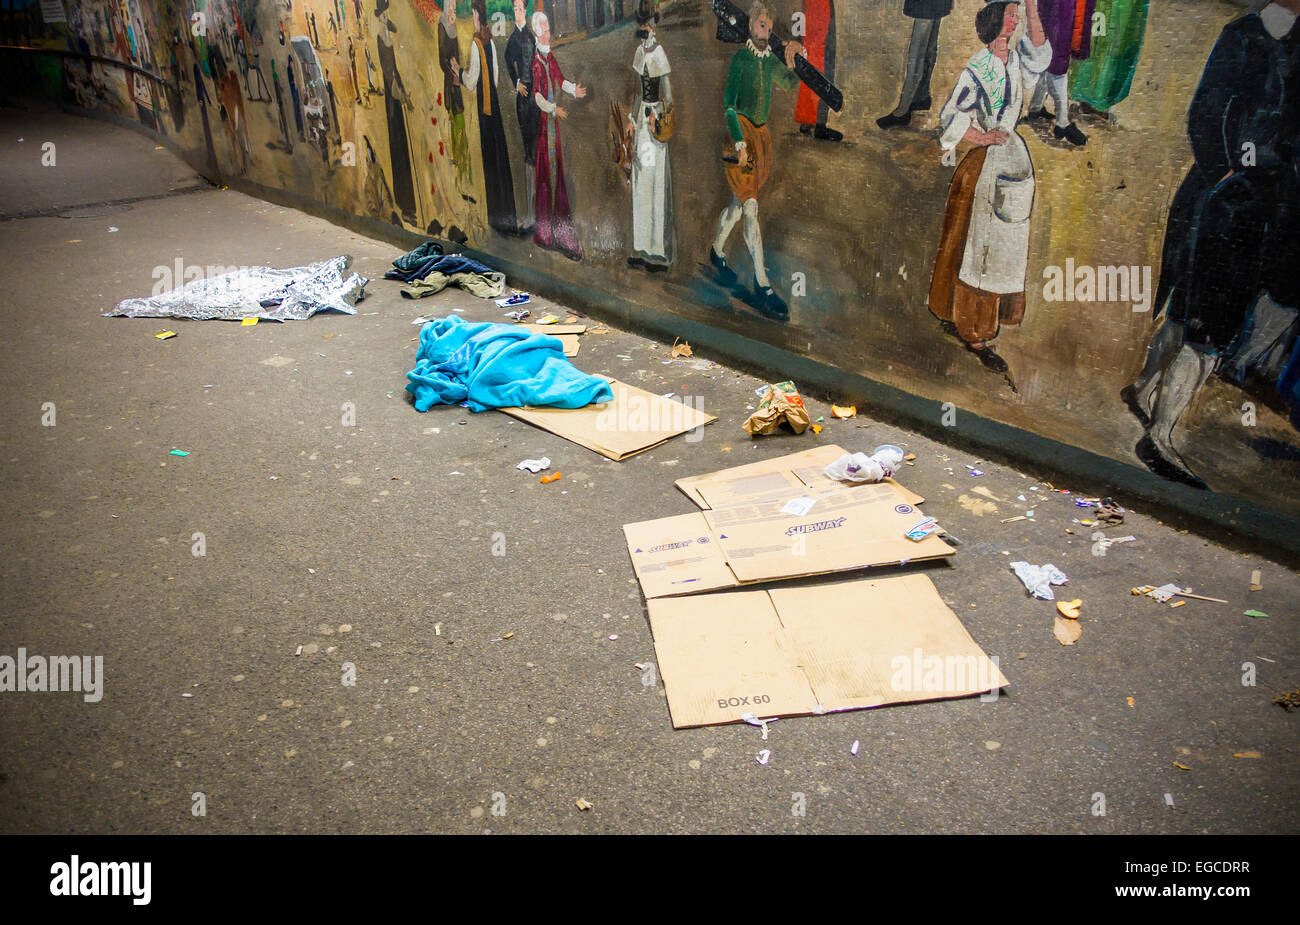 Rubbish left behind by Rough Sleepers and Beggars in Canterbury Subway - Stock Image